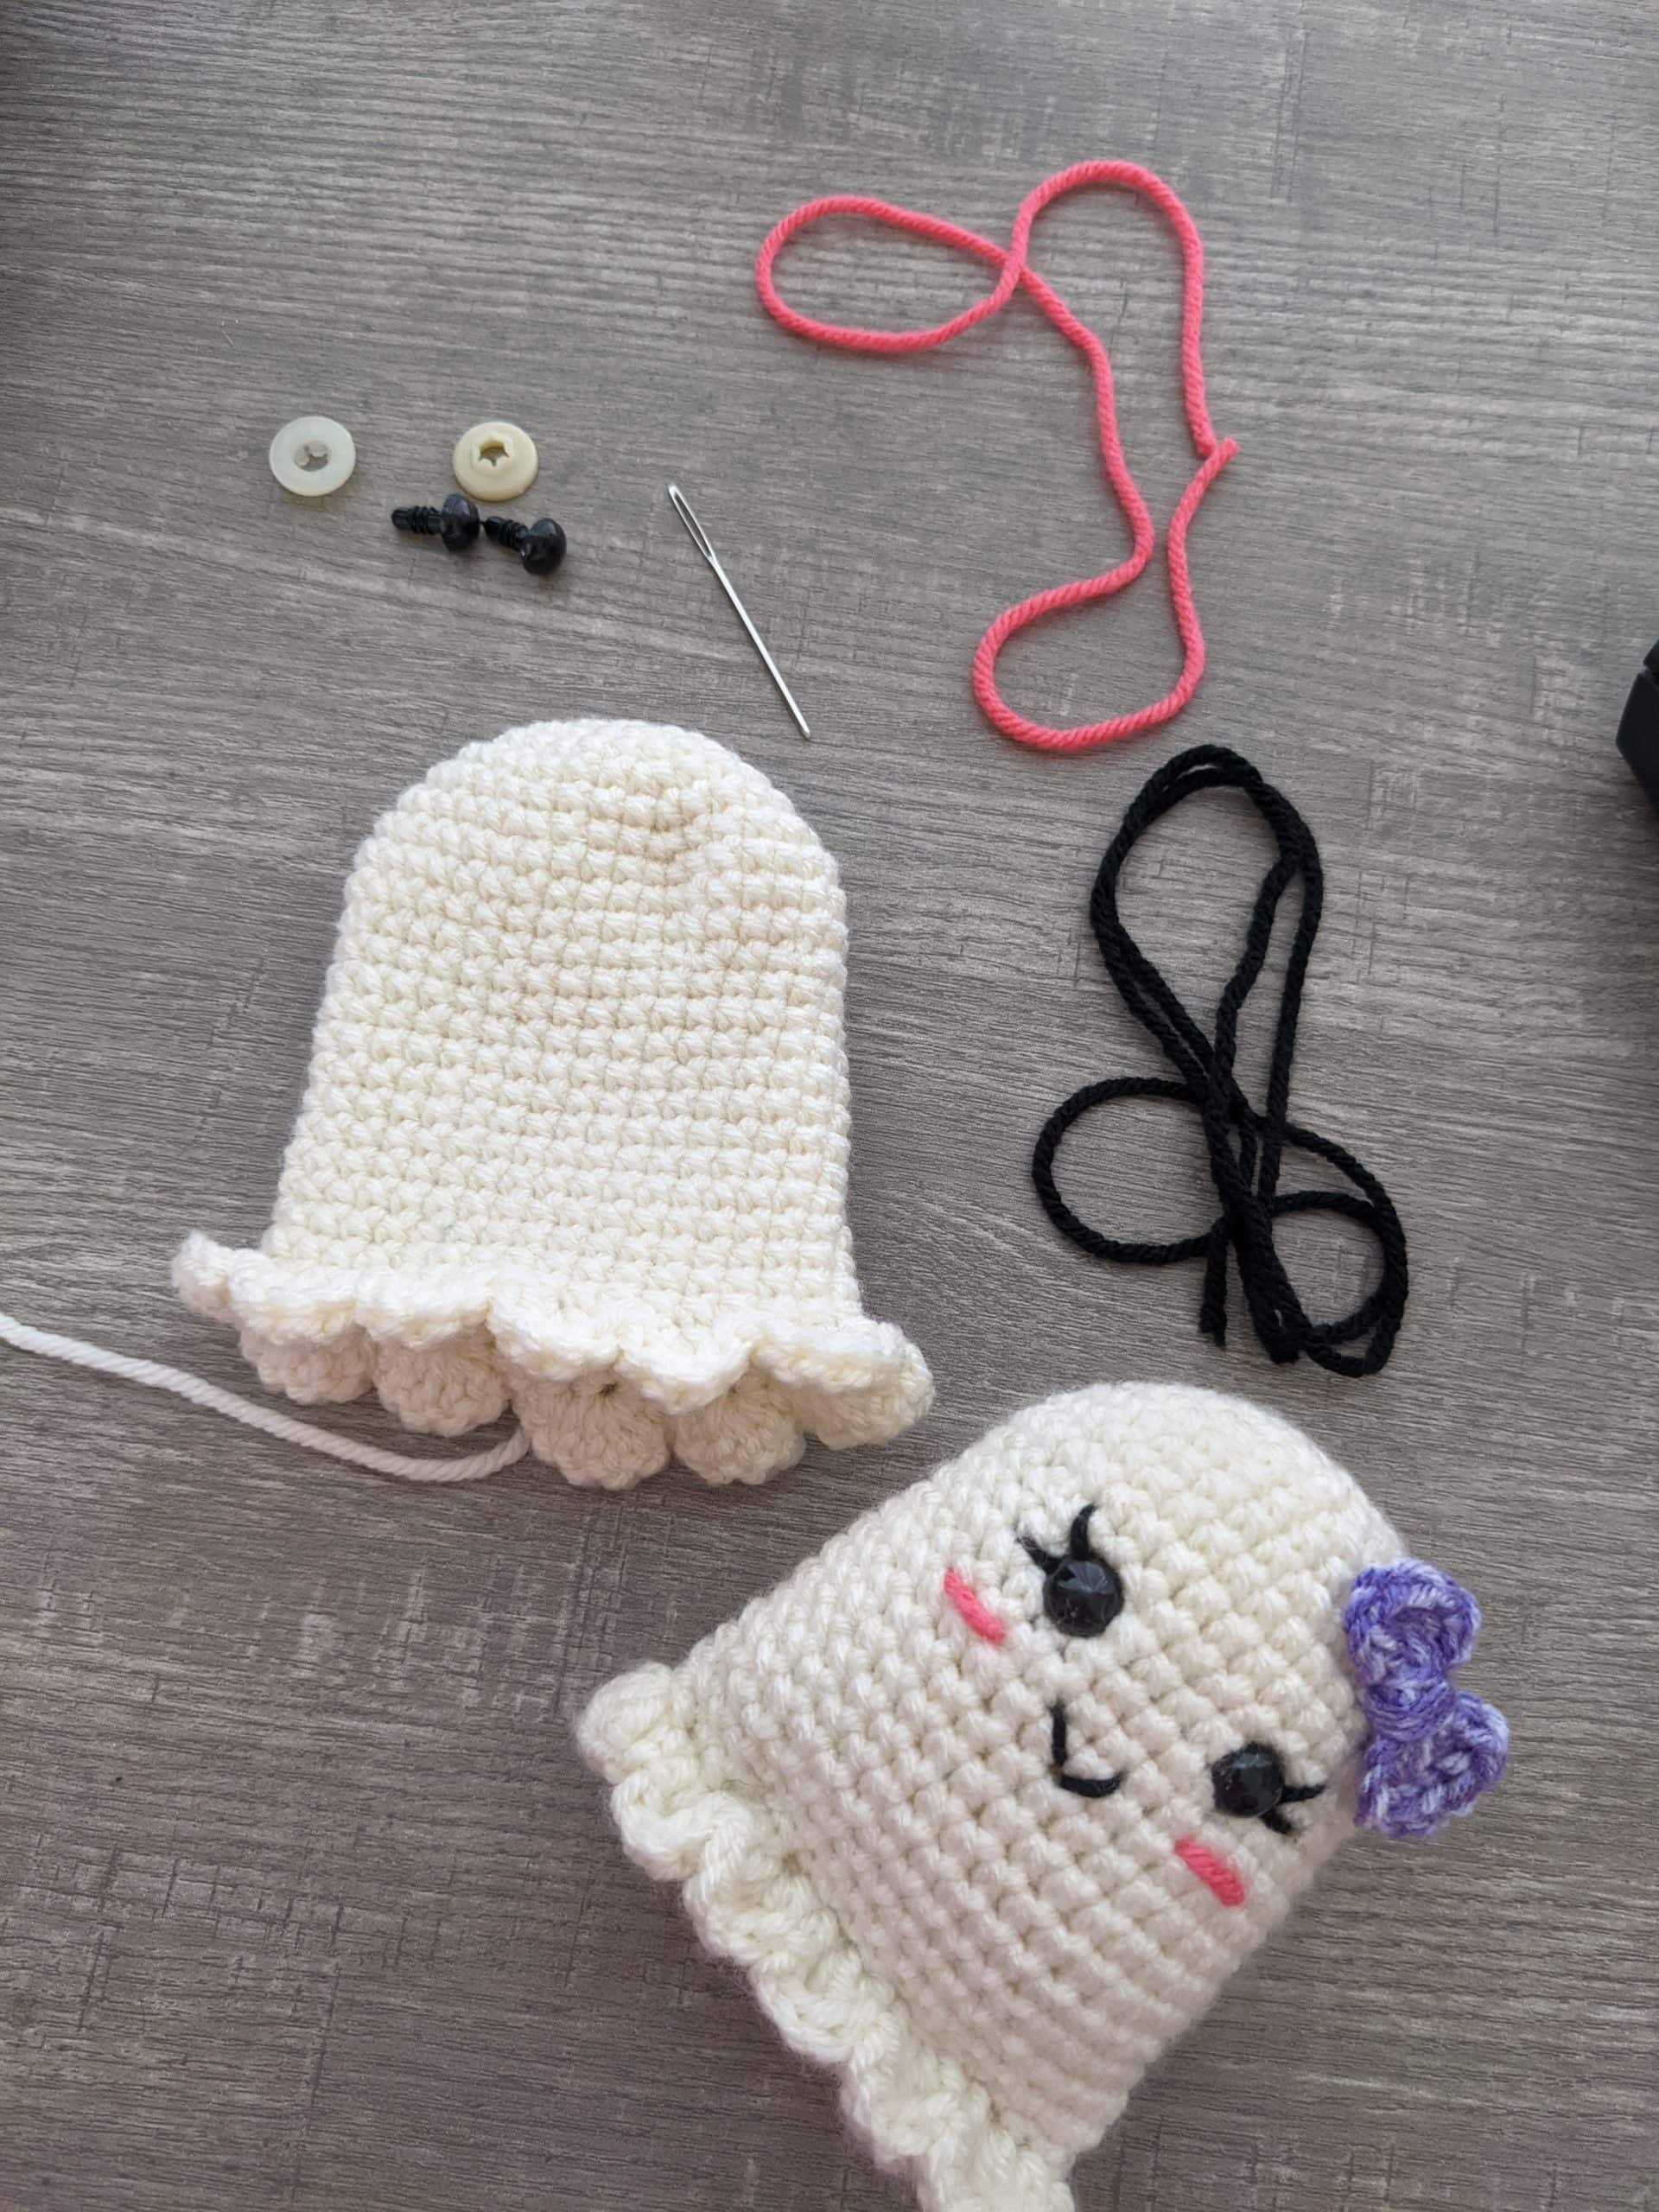 Yarn and crochet white ghost with a purple bow.